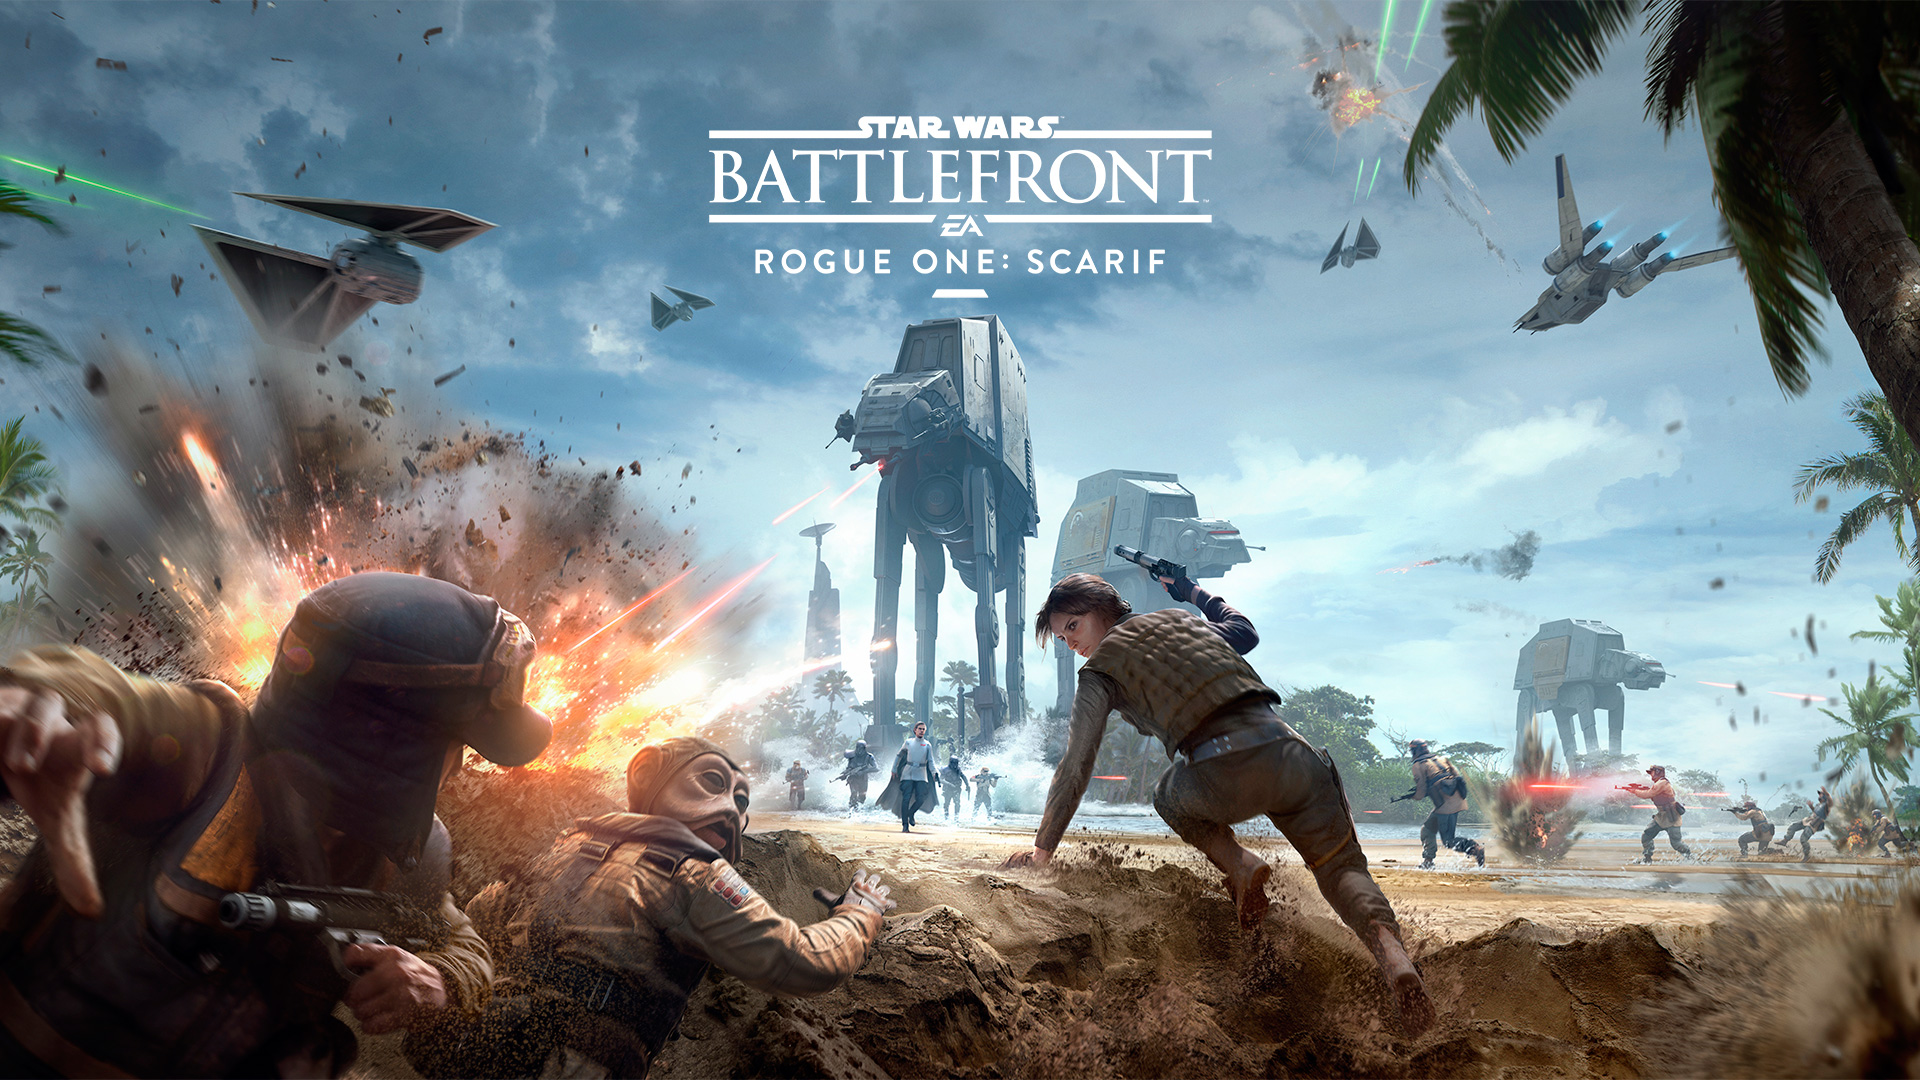 'Star Wars Battlefront: Rogue One: Scarif' – Stays On Target